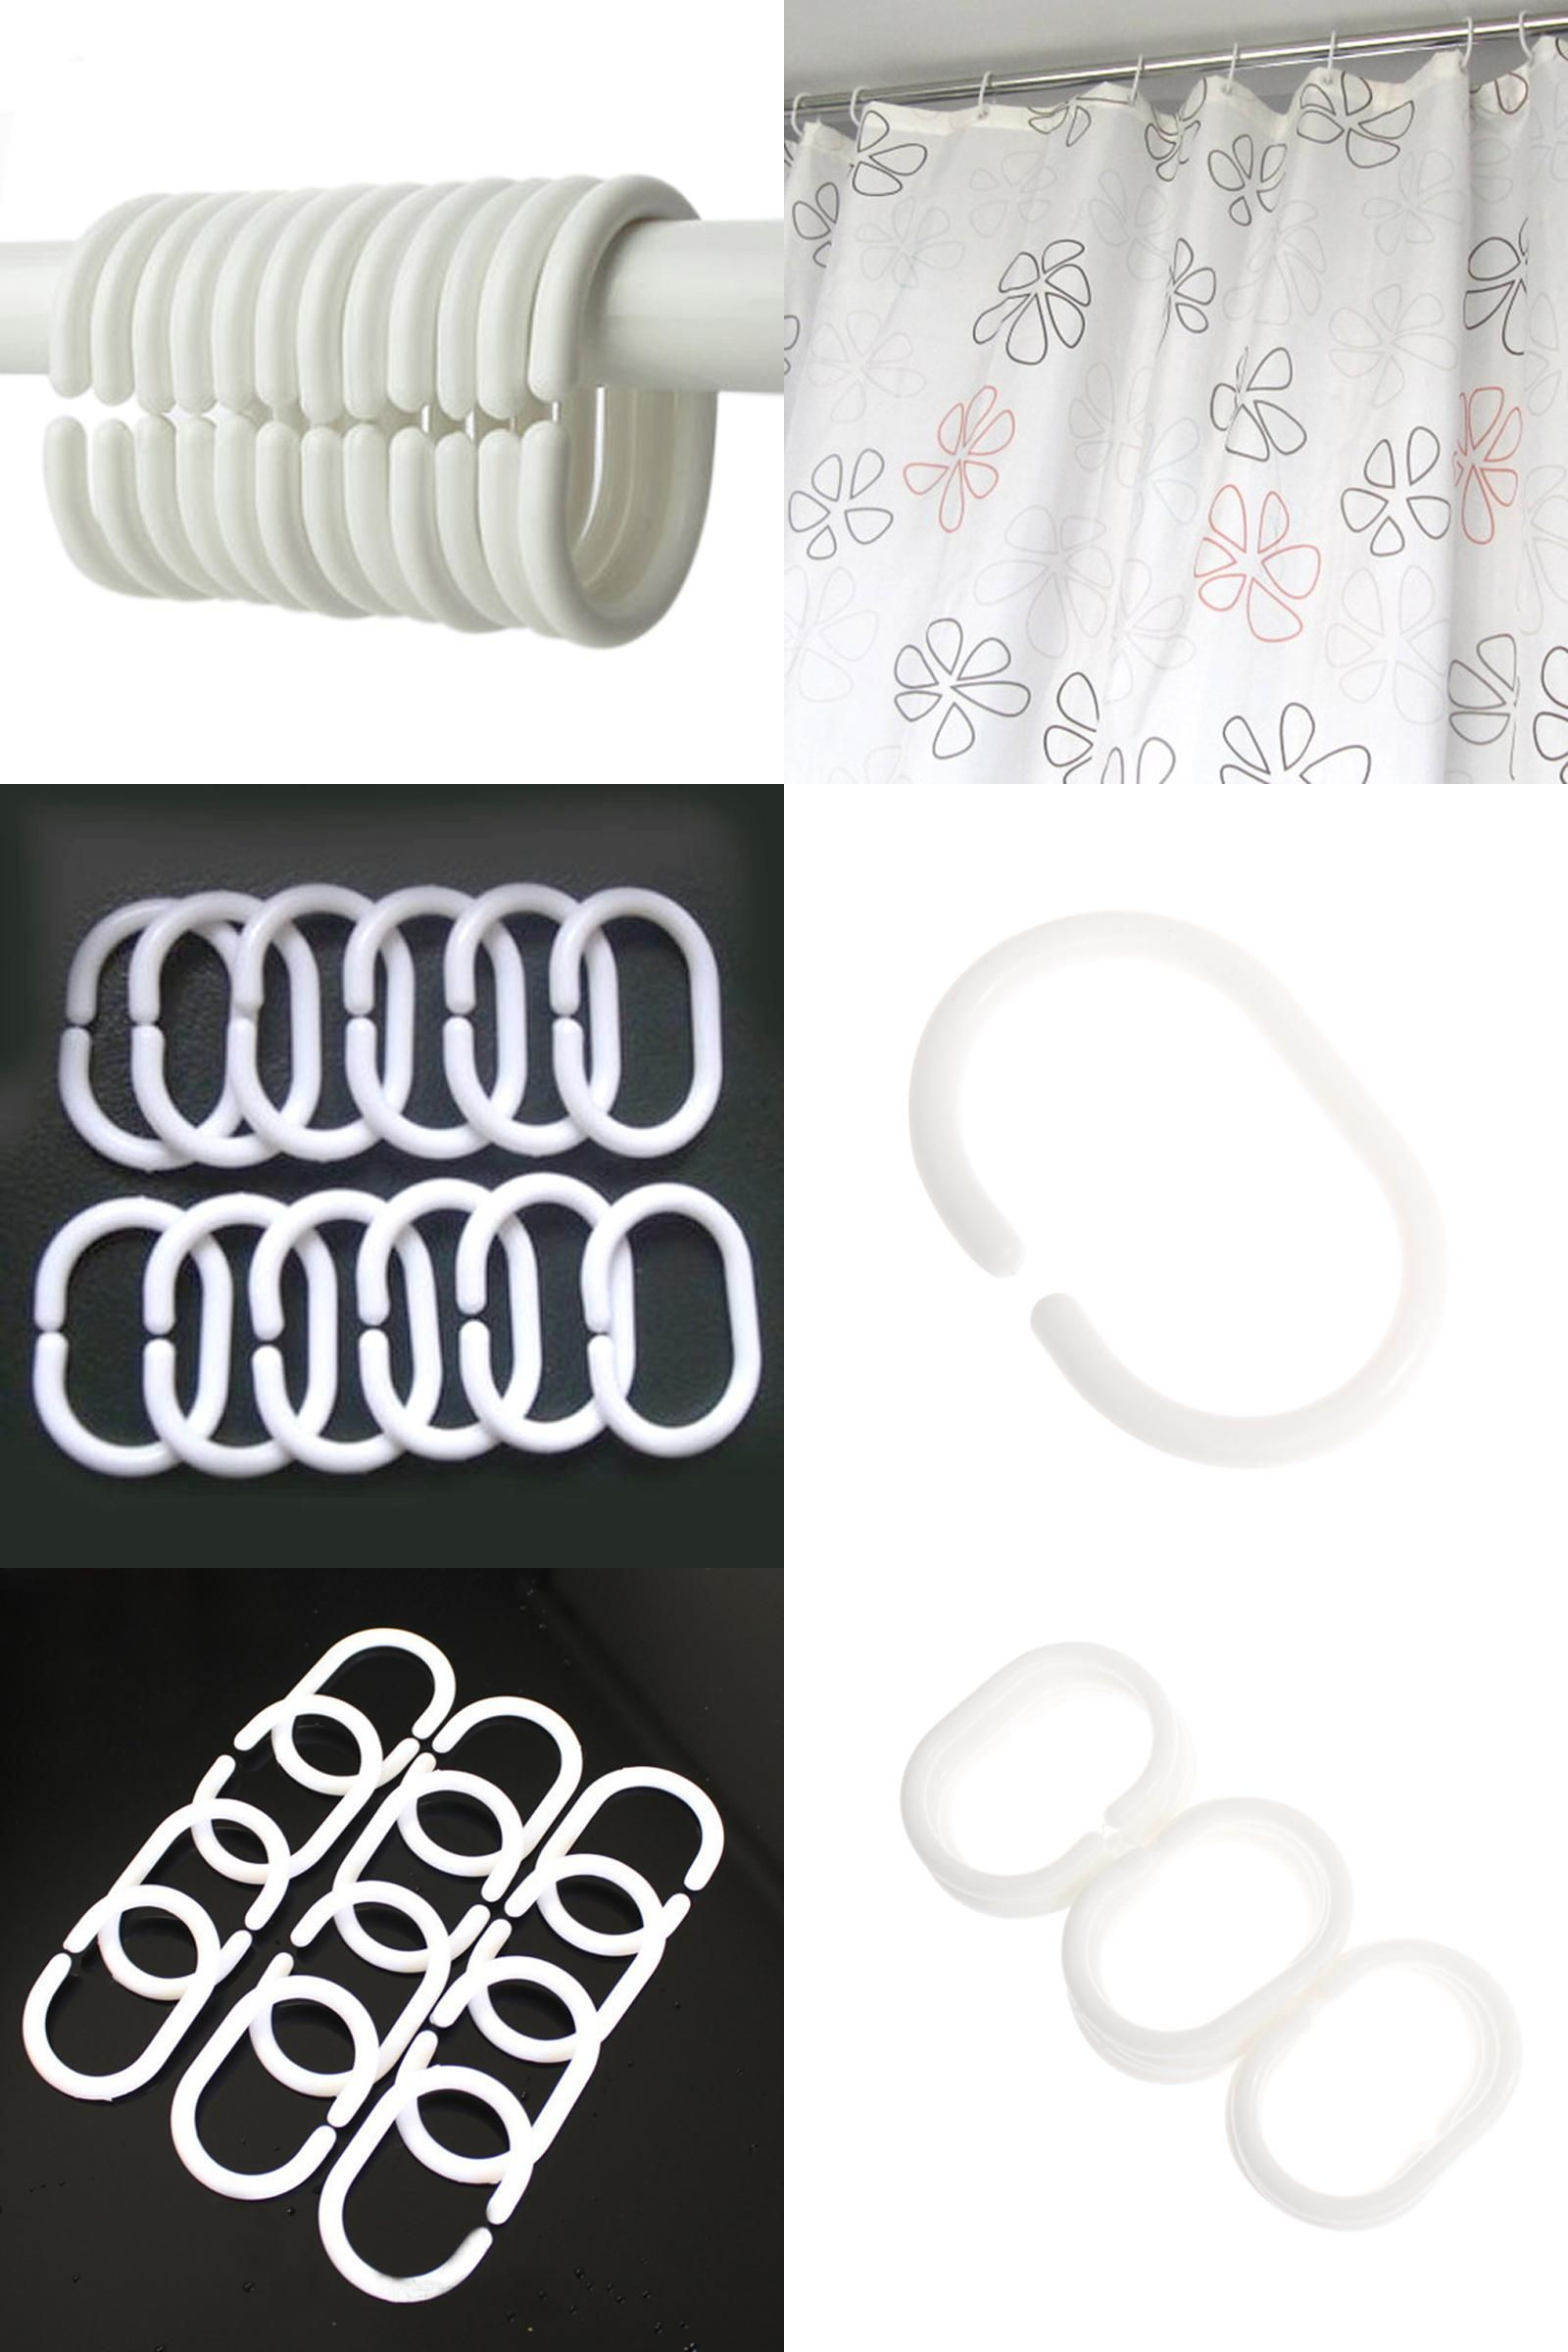 Visit To Buy 12pcs Pack New Plastic Shower Curtain Hook Hanger